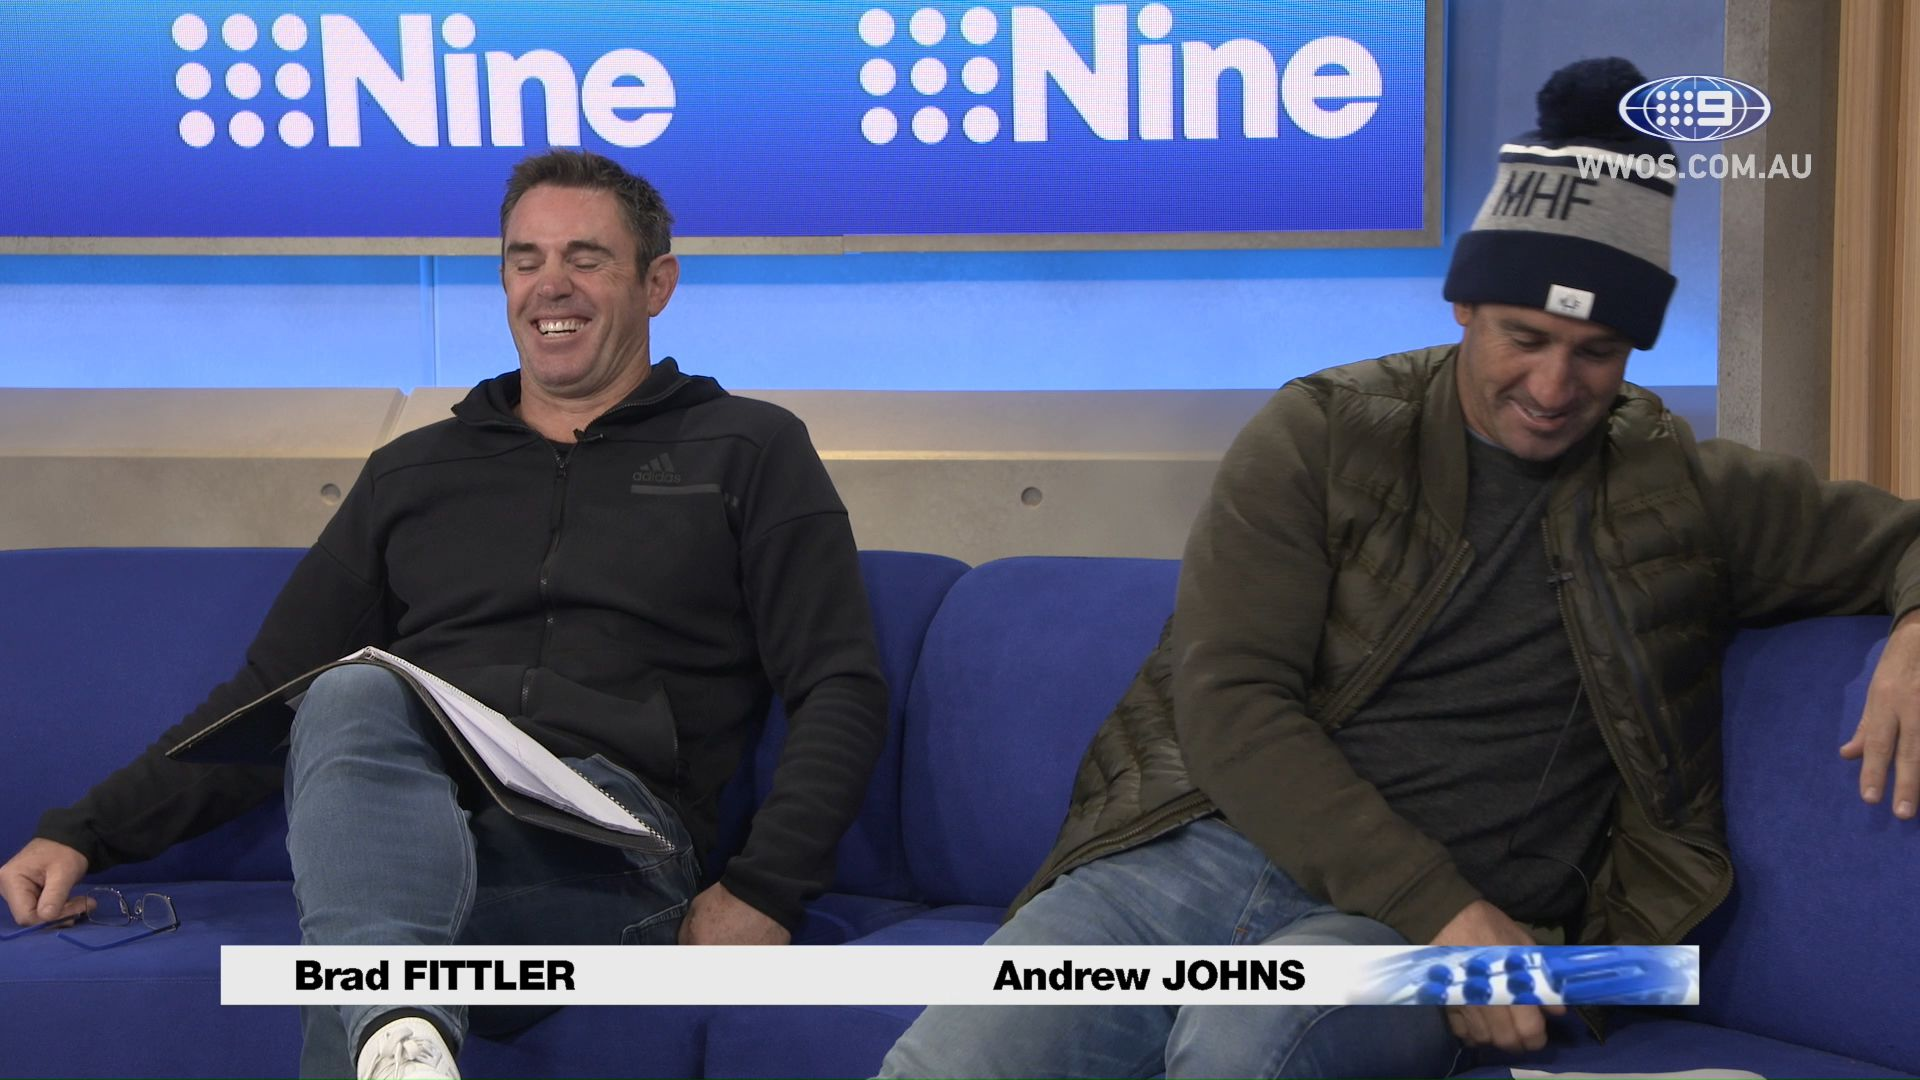 NRL Round 15 tips: Andrew Johns, Brad Fittler and Nine's experts give their predictions